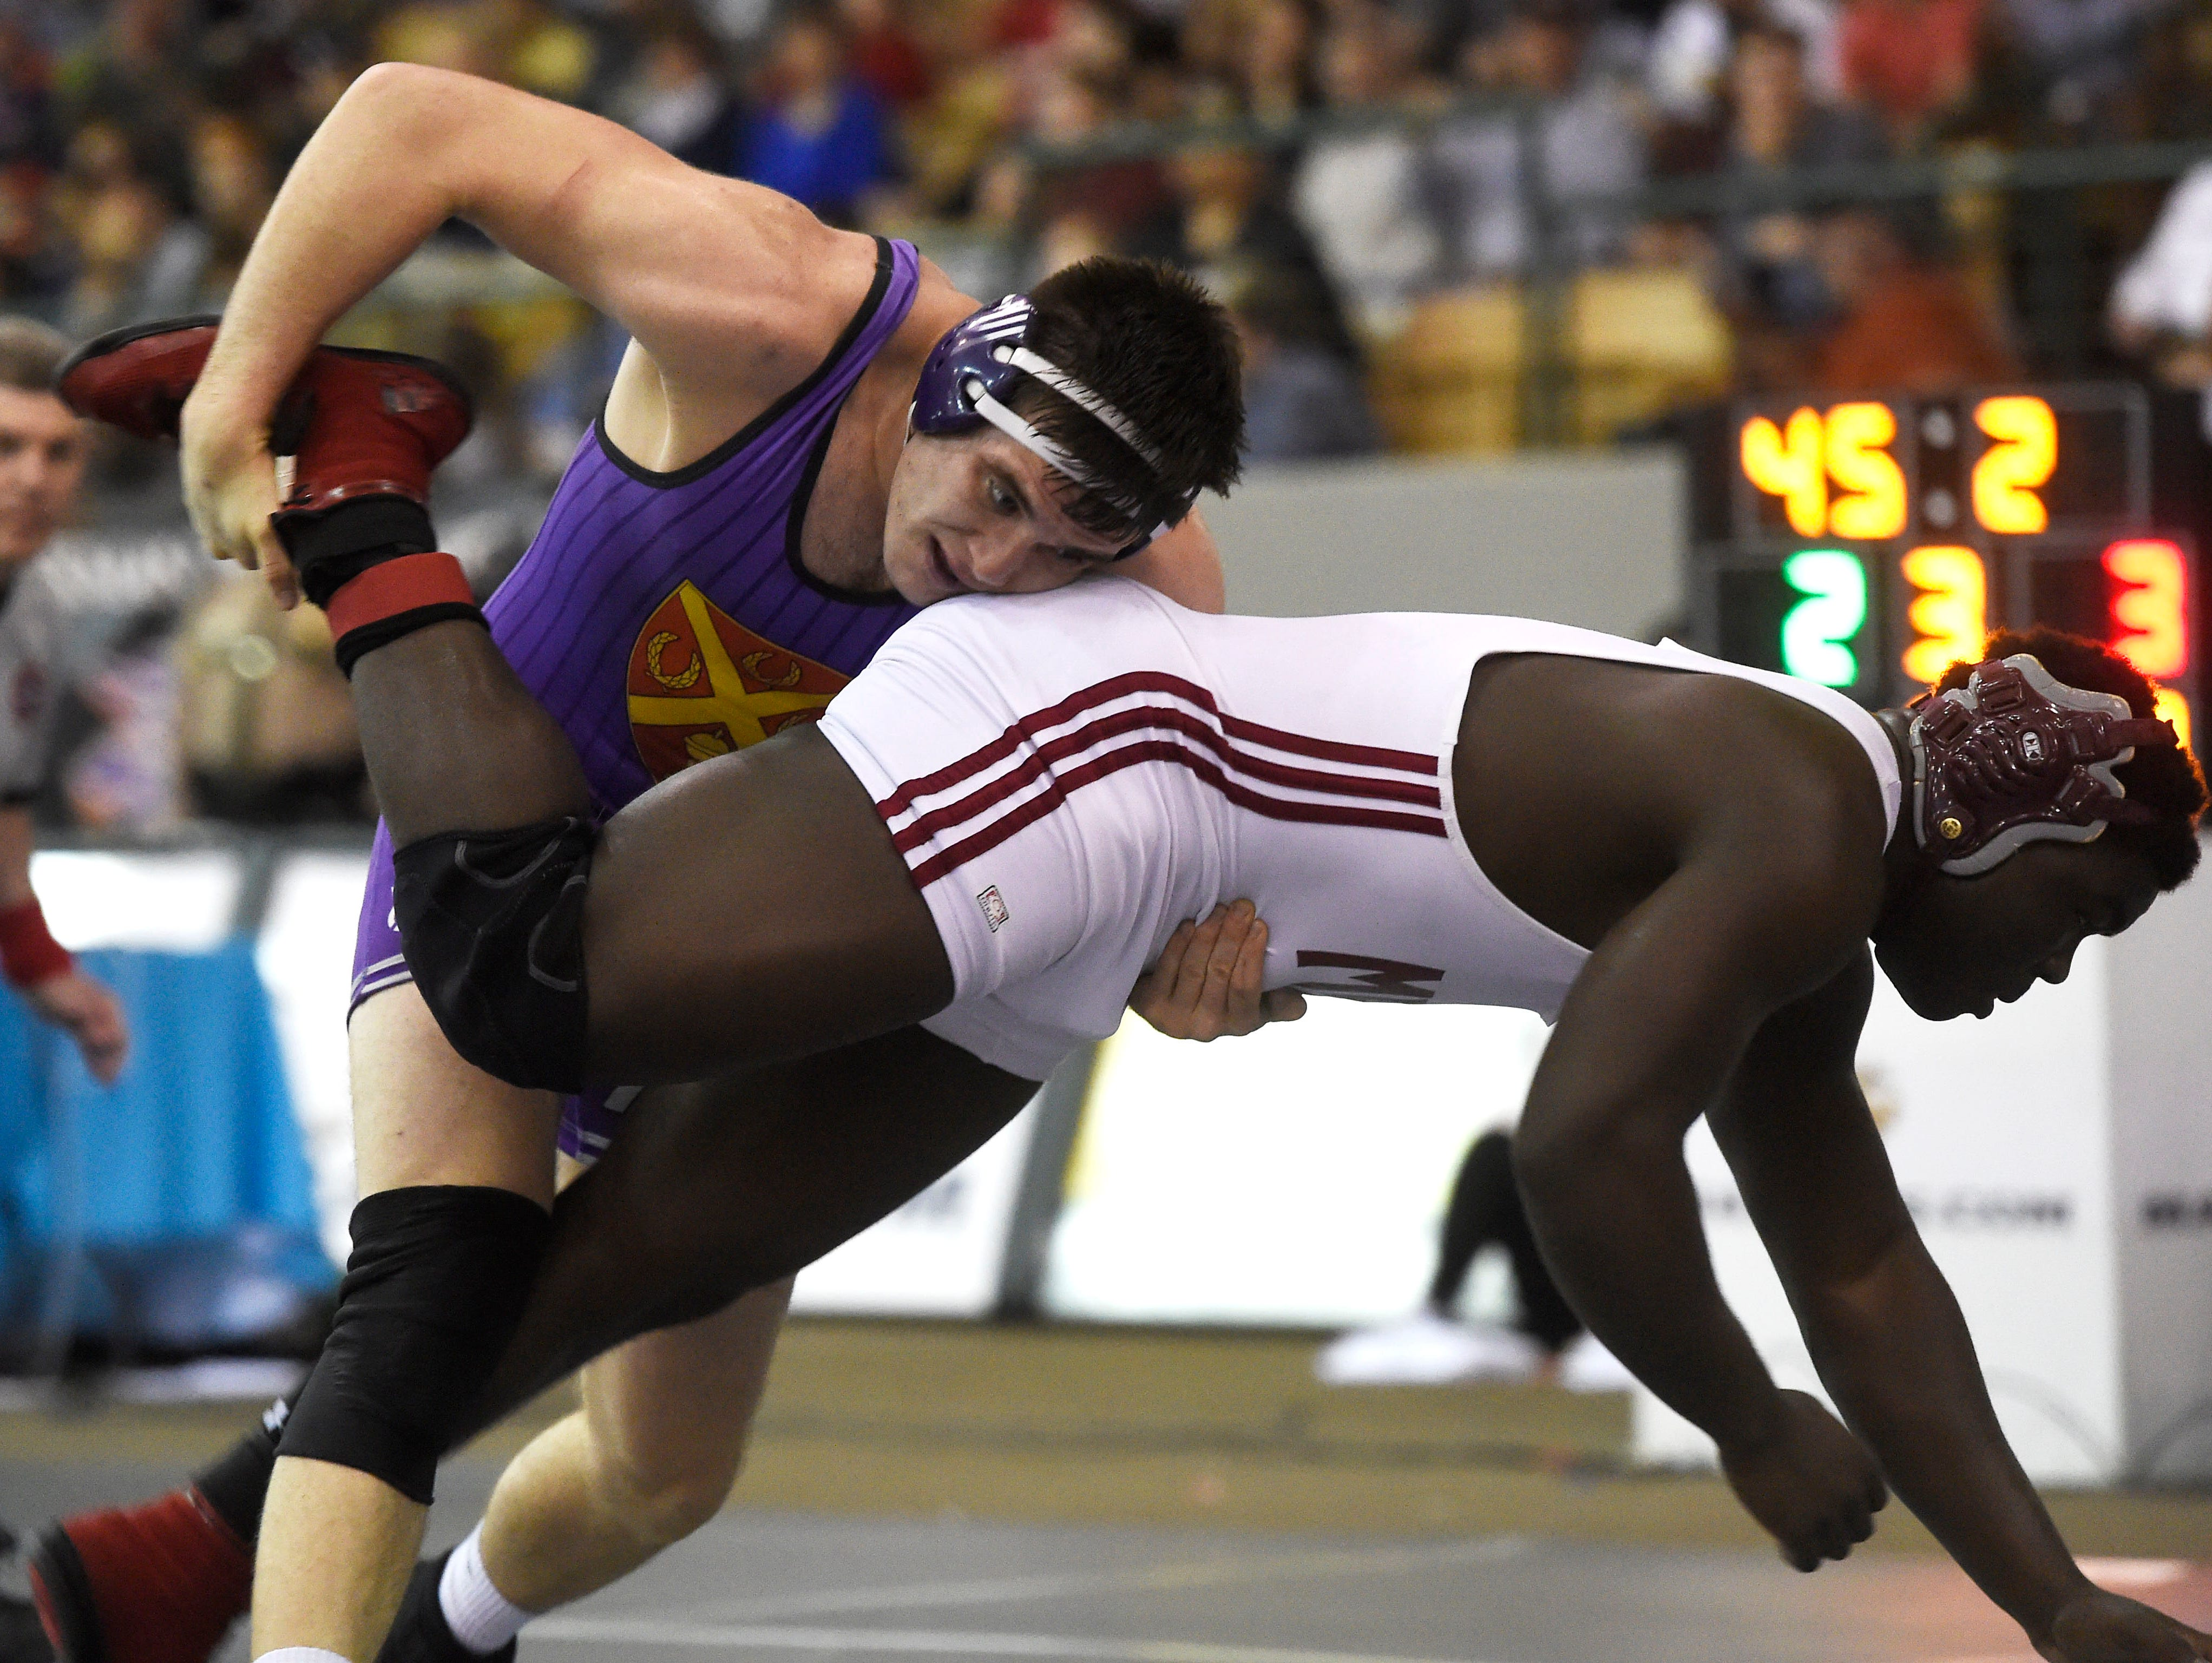 Ben Stacey (Ryan) takes down DÕOn Coofer (MBA) at the TSSAA state wrestling championships Saturday Feb. 20, 2016, in Franklin, Tenn.